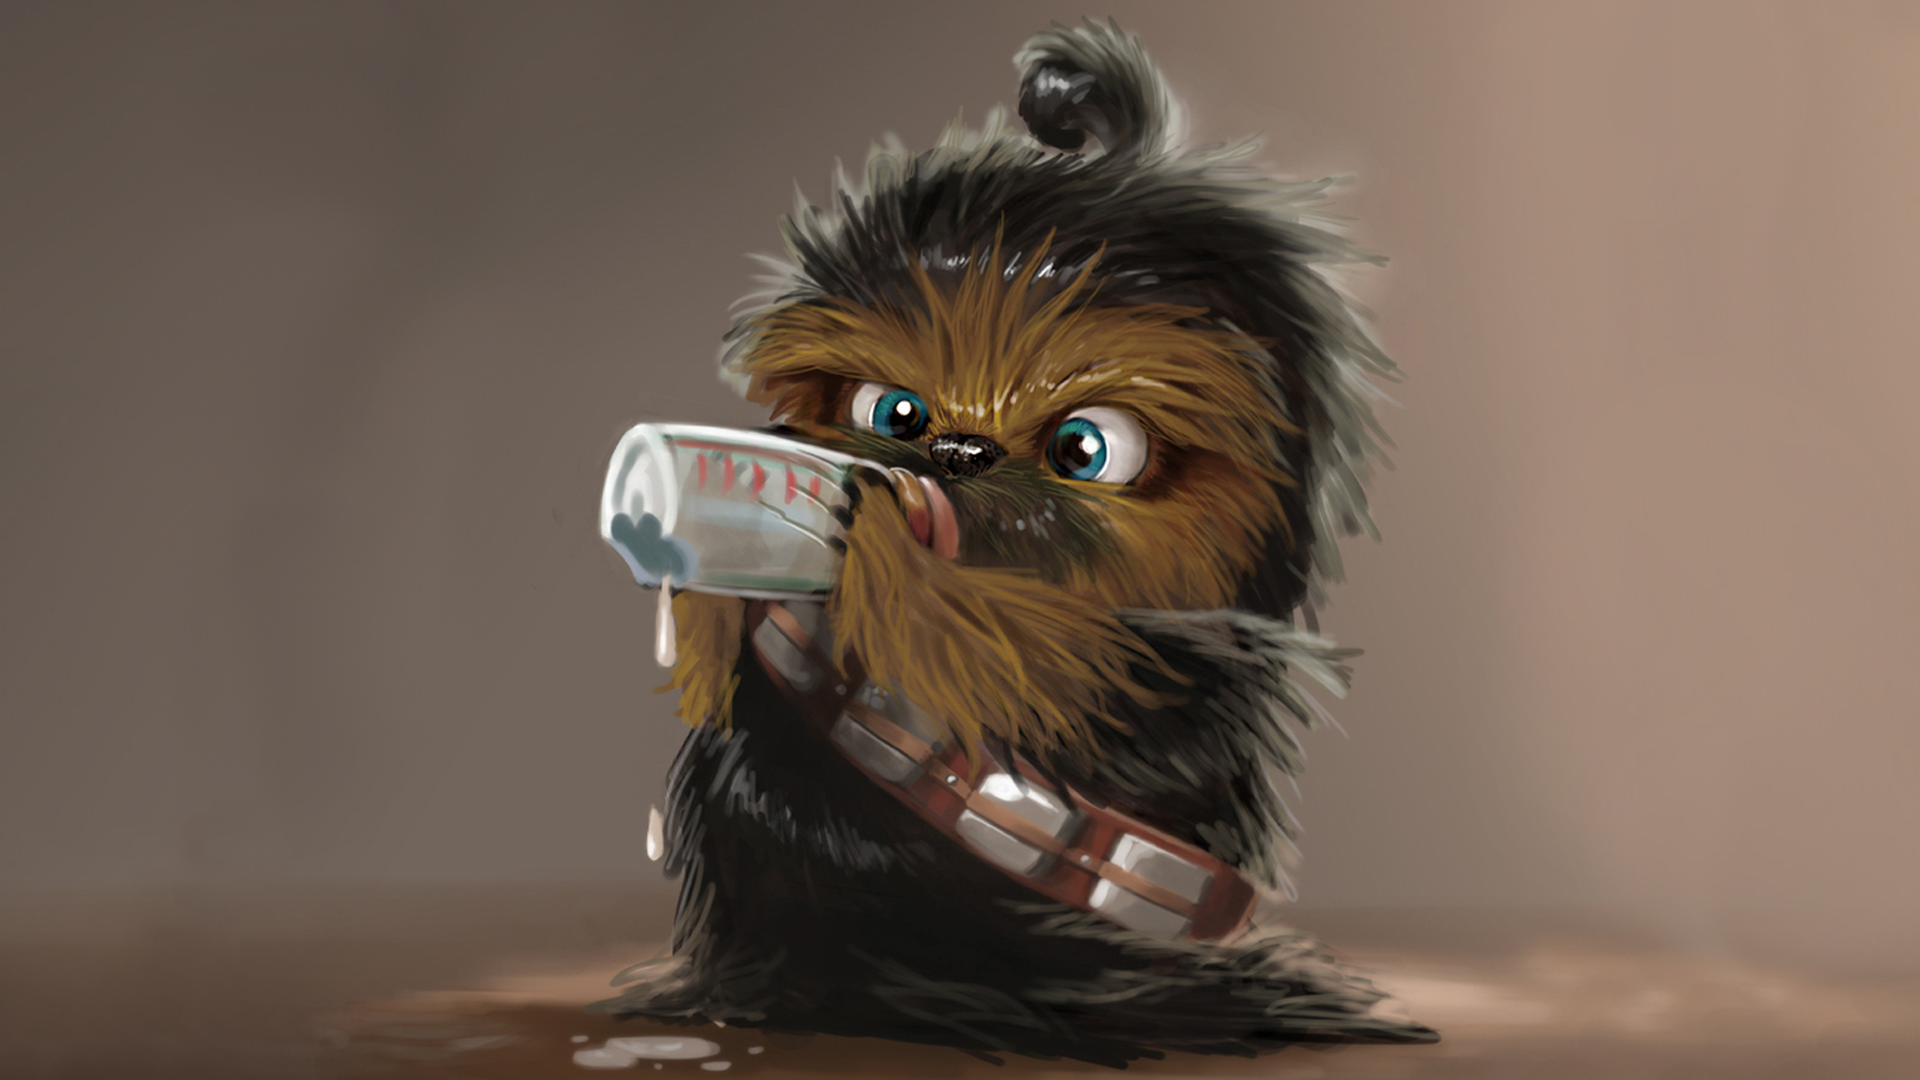 Chewbacca Wallpaper (2)